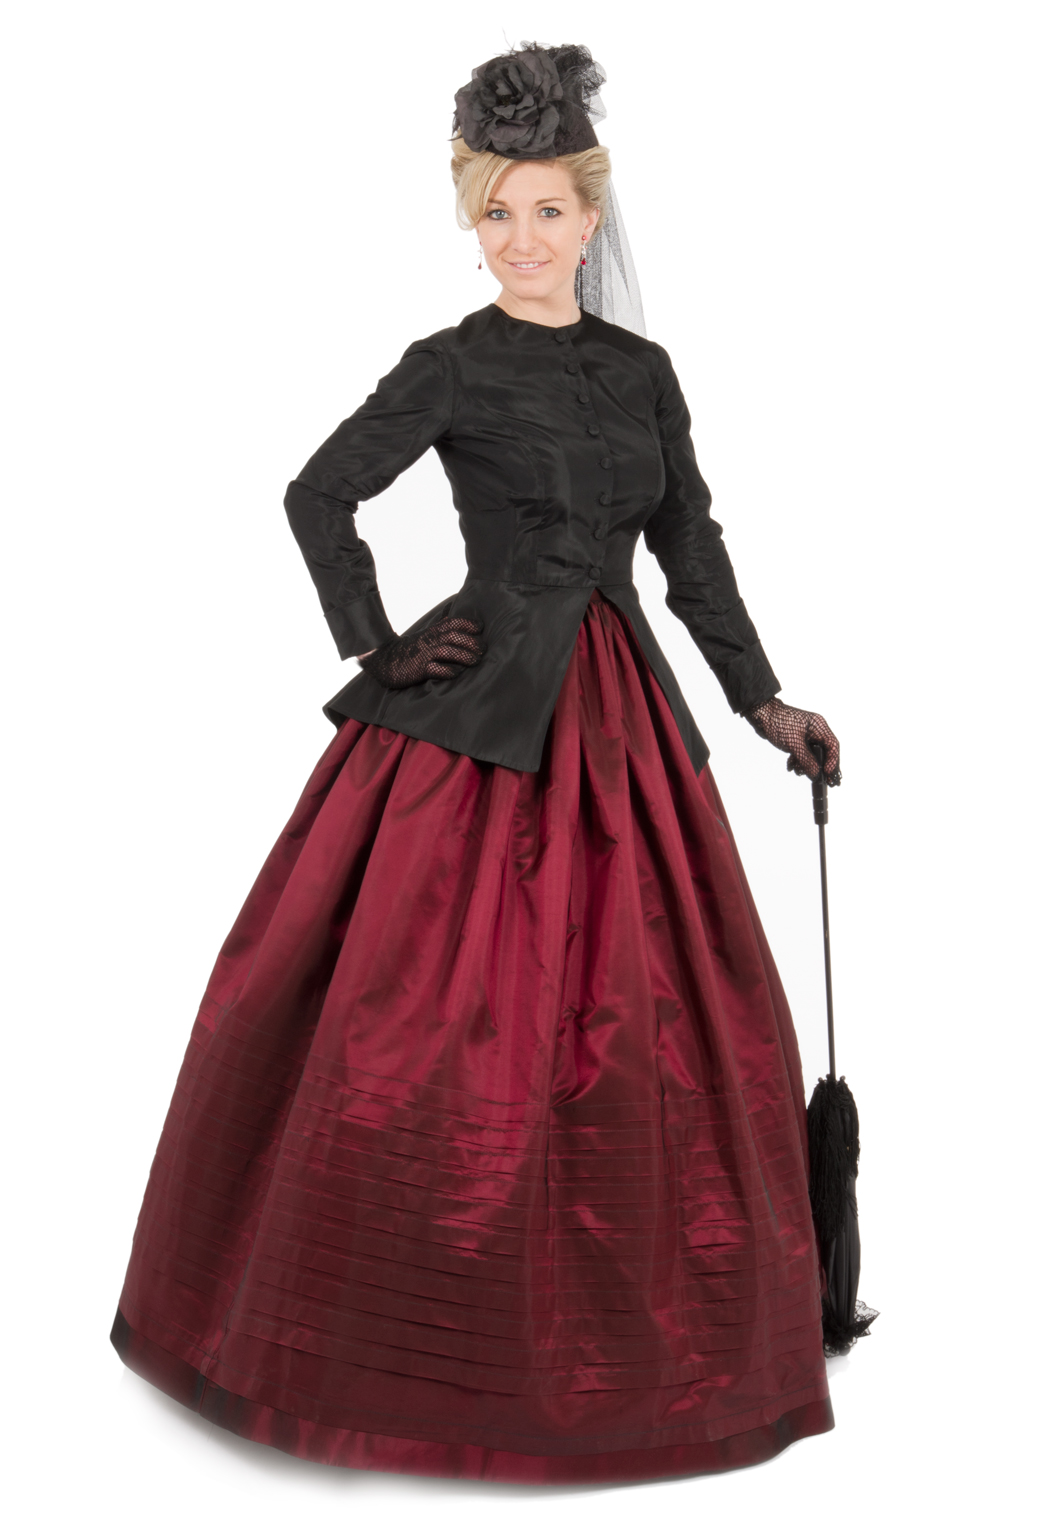 Original Victorian Fashion  Dresses Skirts And Jewelry Of The Victorian Era